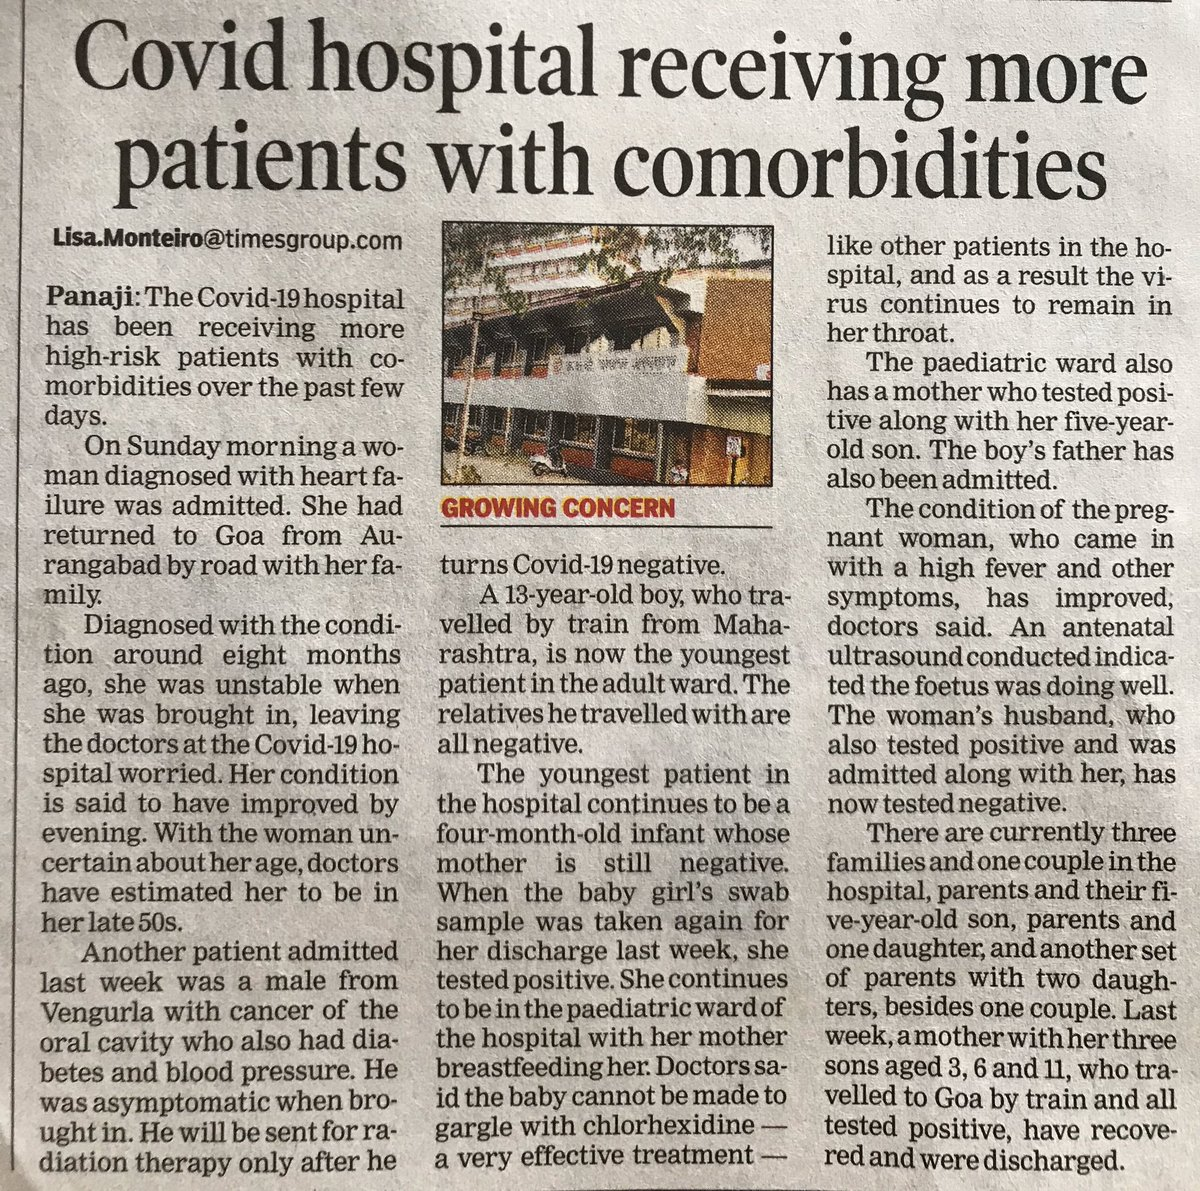 Our #Doctors & #HealthcareHeroes at #Covid_19 #hospitals are carrying out an onerous task.  #ThankYou all for selflessly serving the #State & #Nation at this crucial juncture.  @GoaGmc @visrane @goacm @DrPramodPSawant https://t.co/8QVfnp1CK0